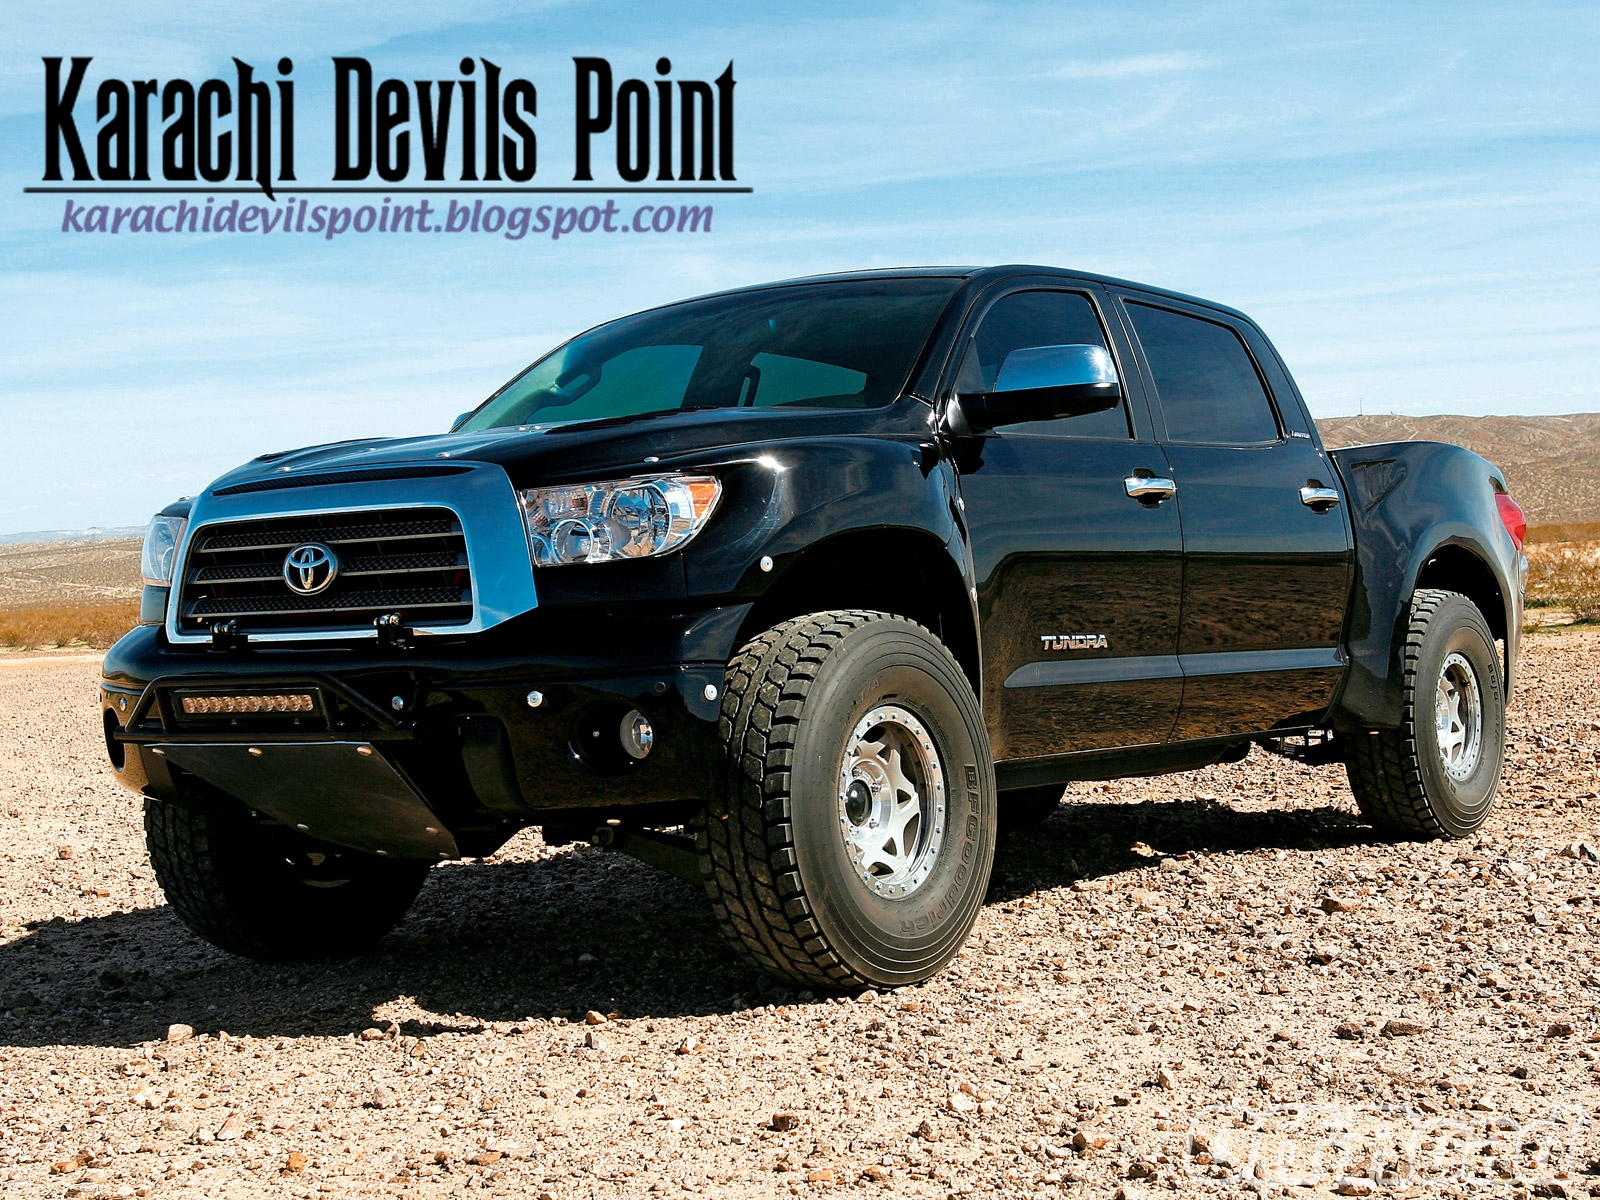 toyota tundra crewmax 4x4 2013 karachi devils point. Black Bedroom Furniture Sets. Home Design Ideas